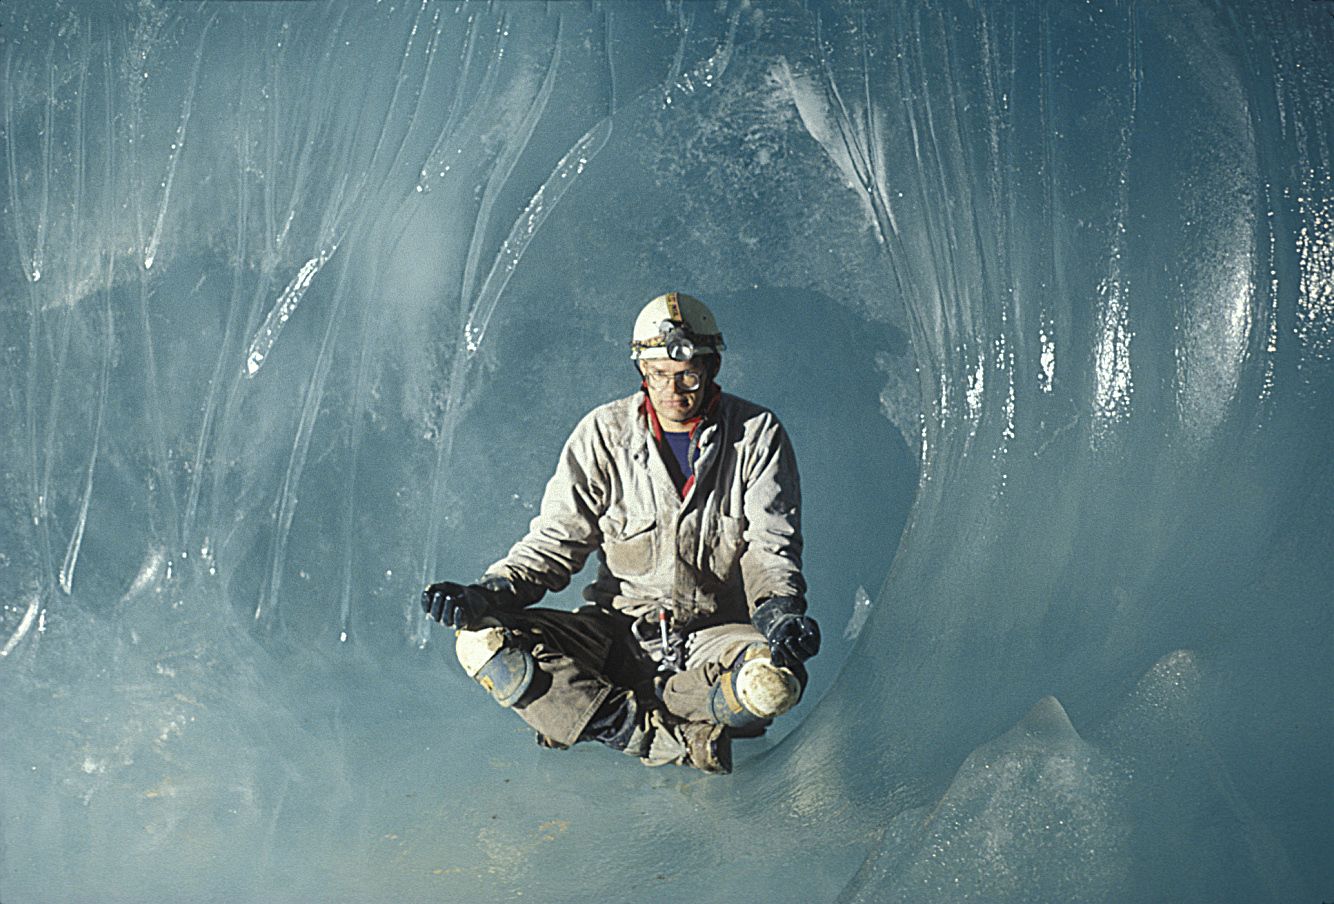 Ice cave - Wikipedia